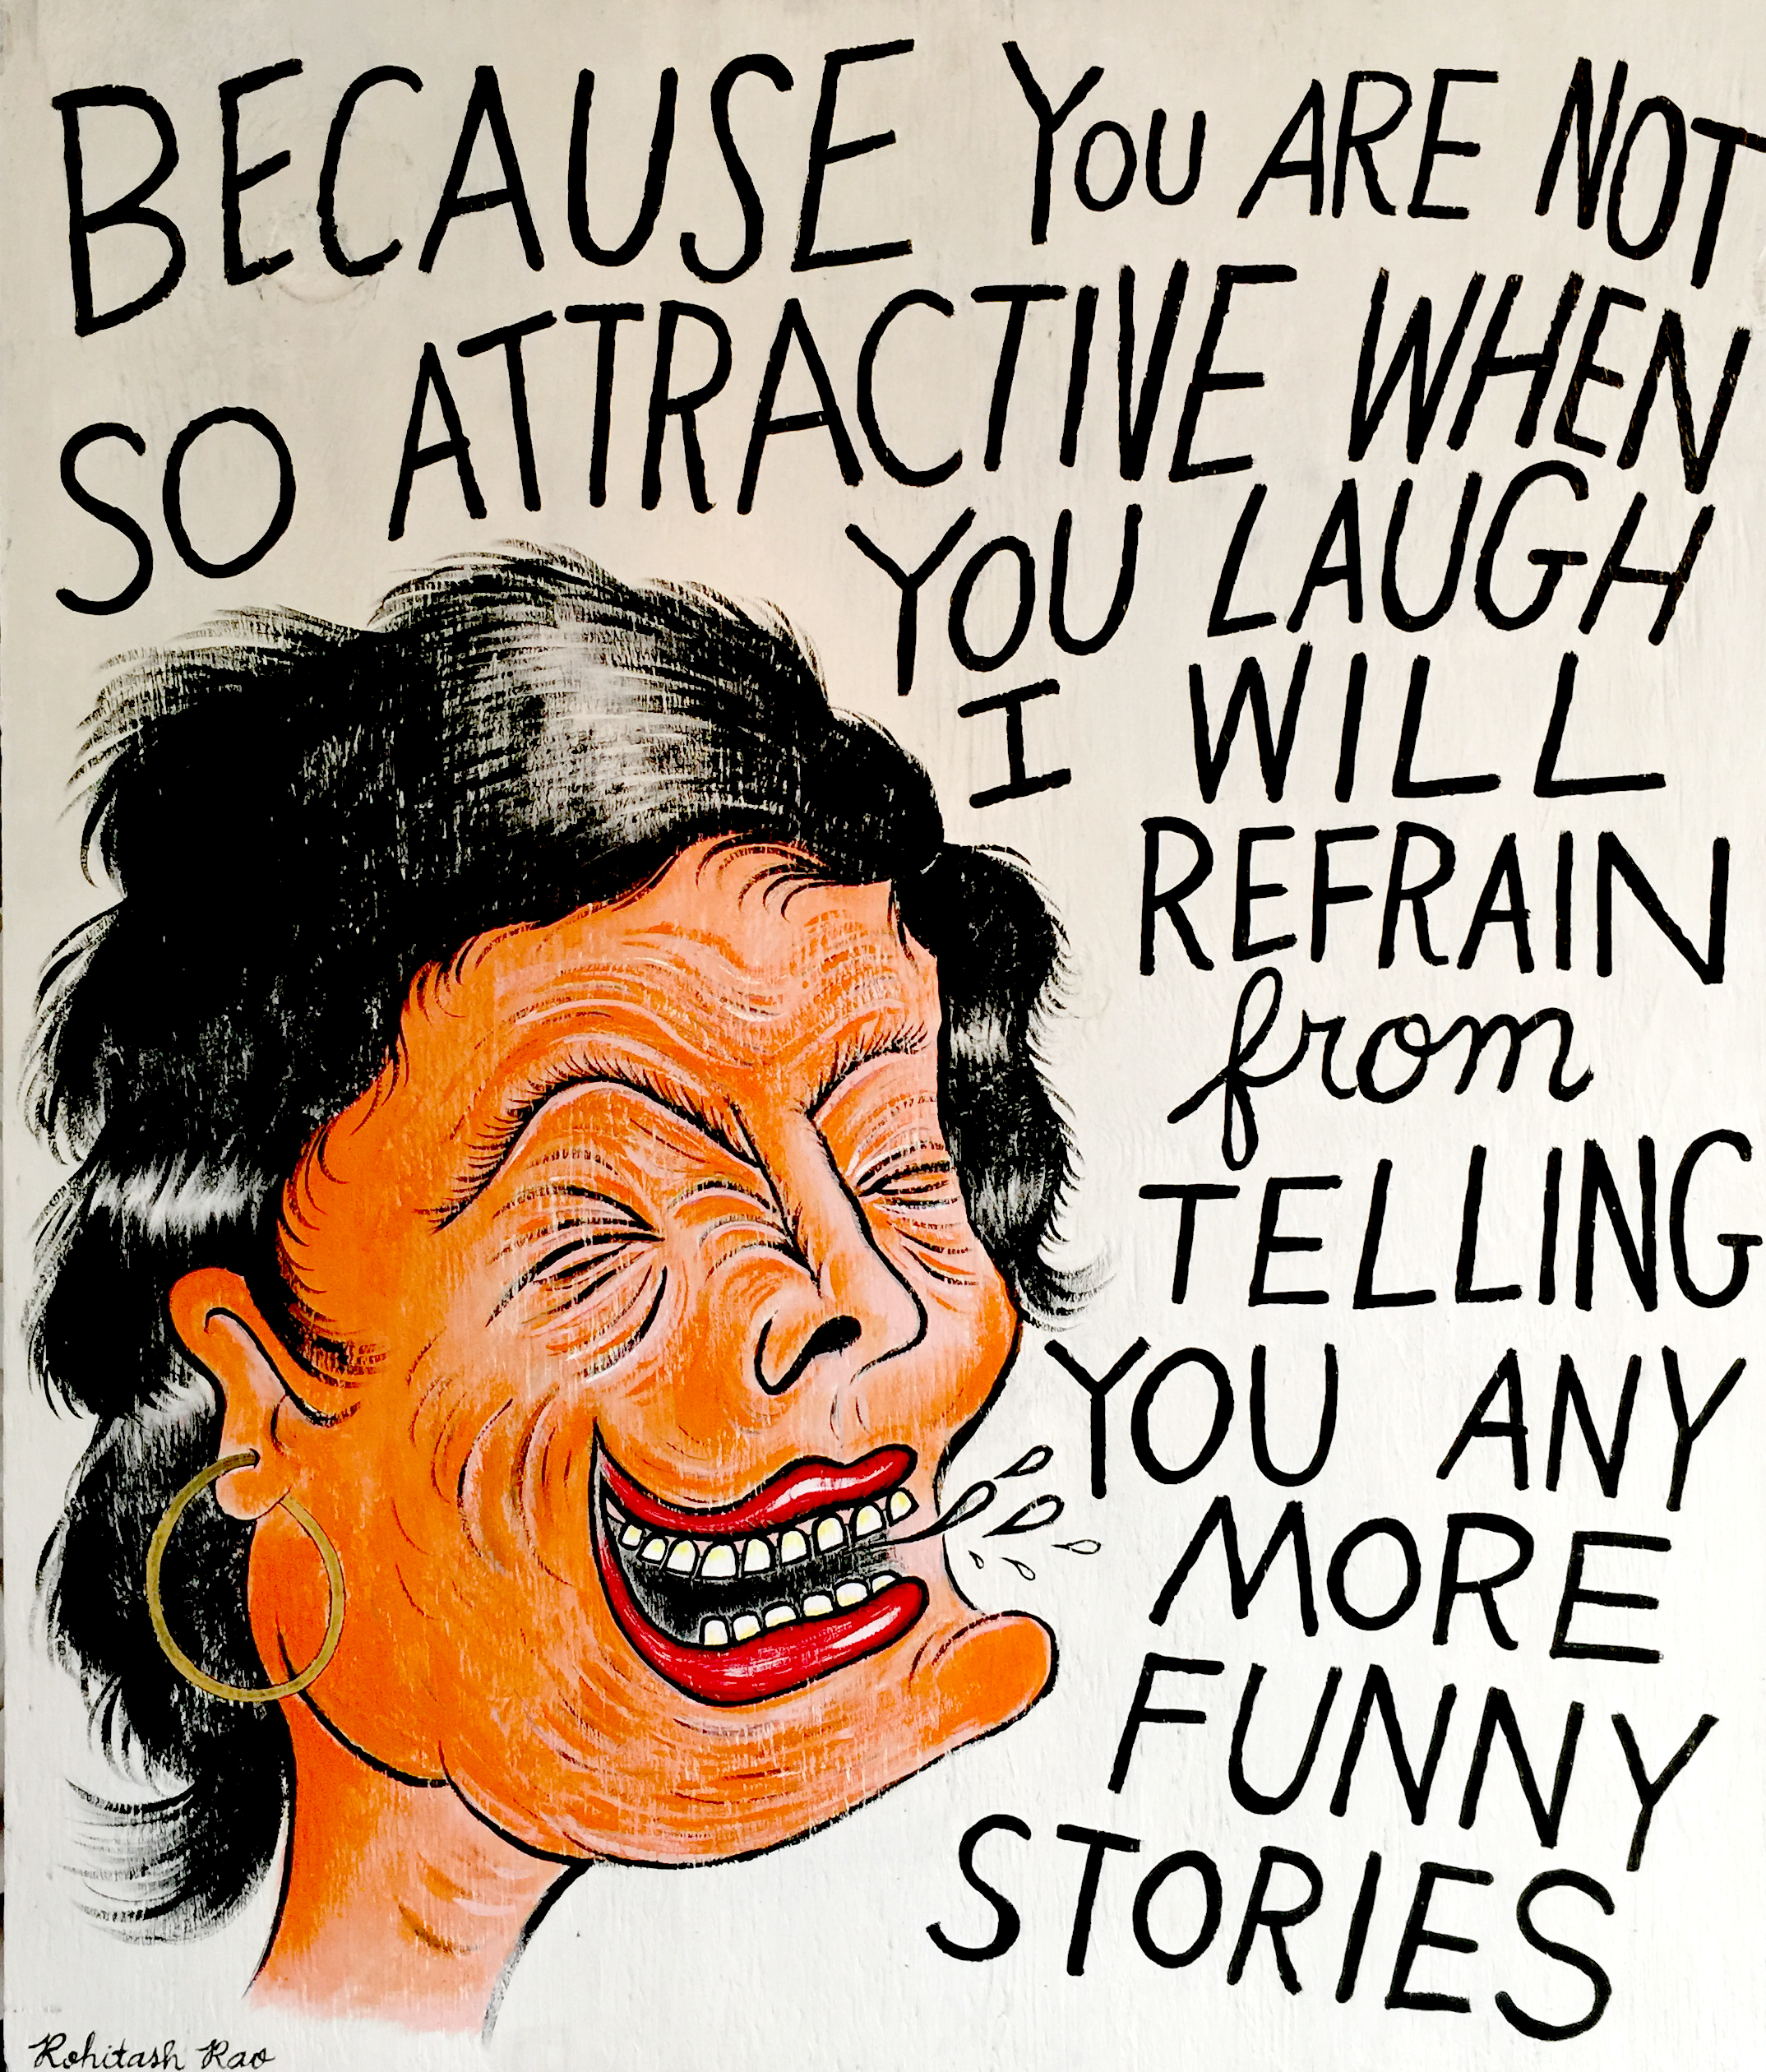 BECAUSE YOU ARE NOT SO ATTRACTIVE WHEN YOU LAUGH